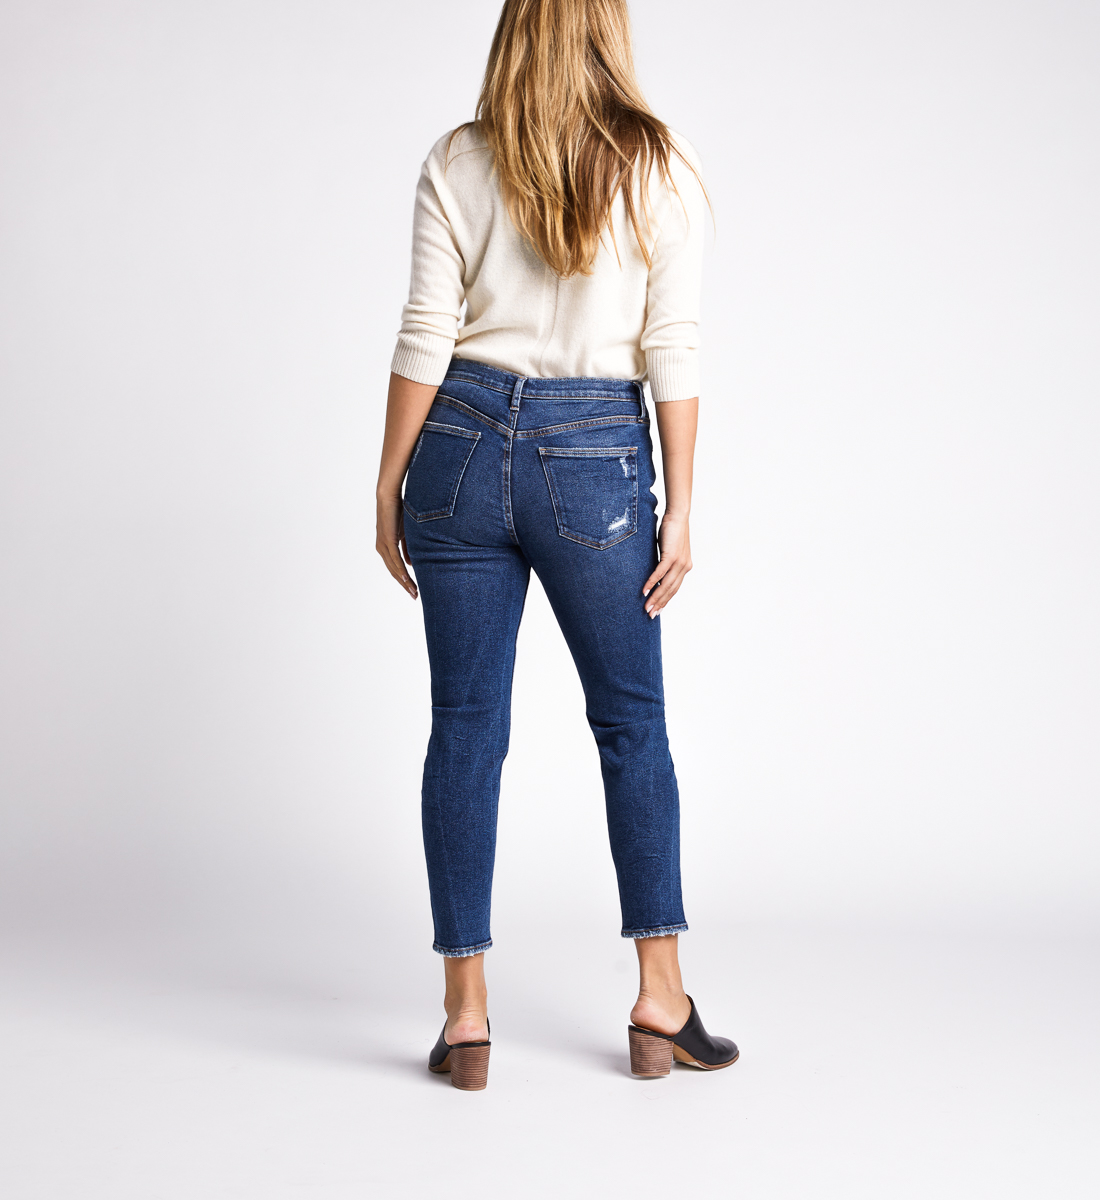 Frisco High Rise Skinny Leg Jeans,Indigo Back